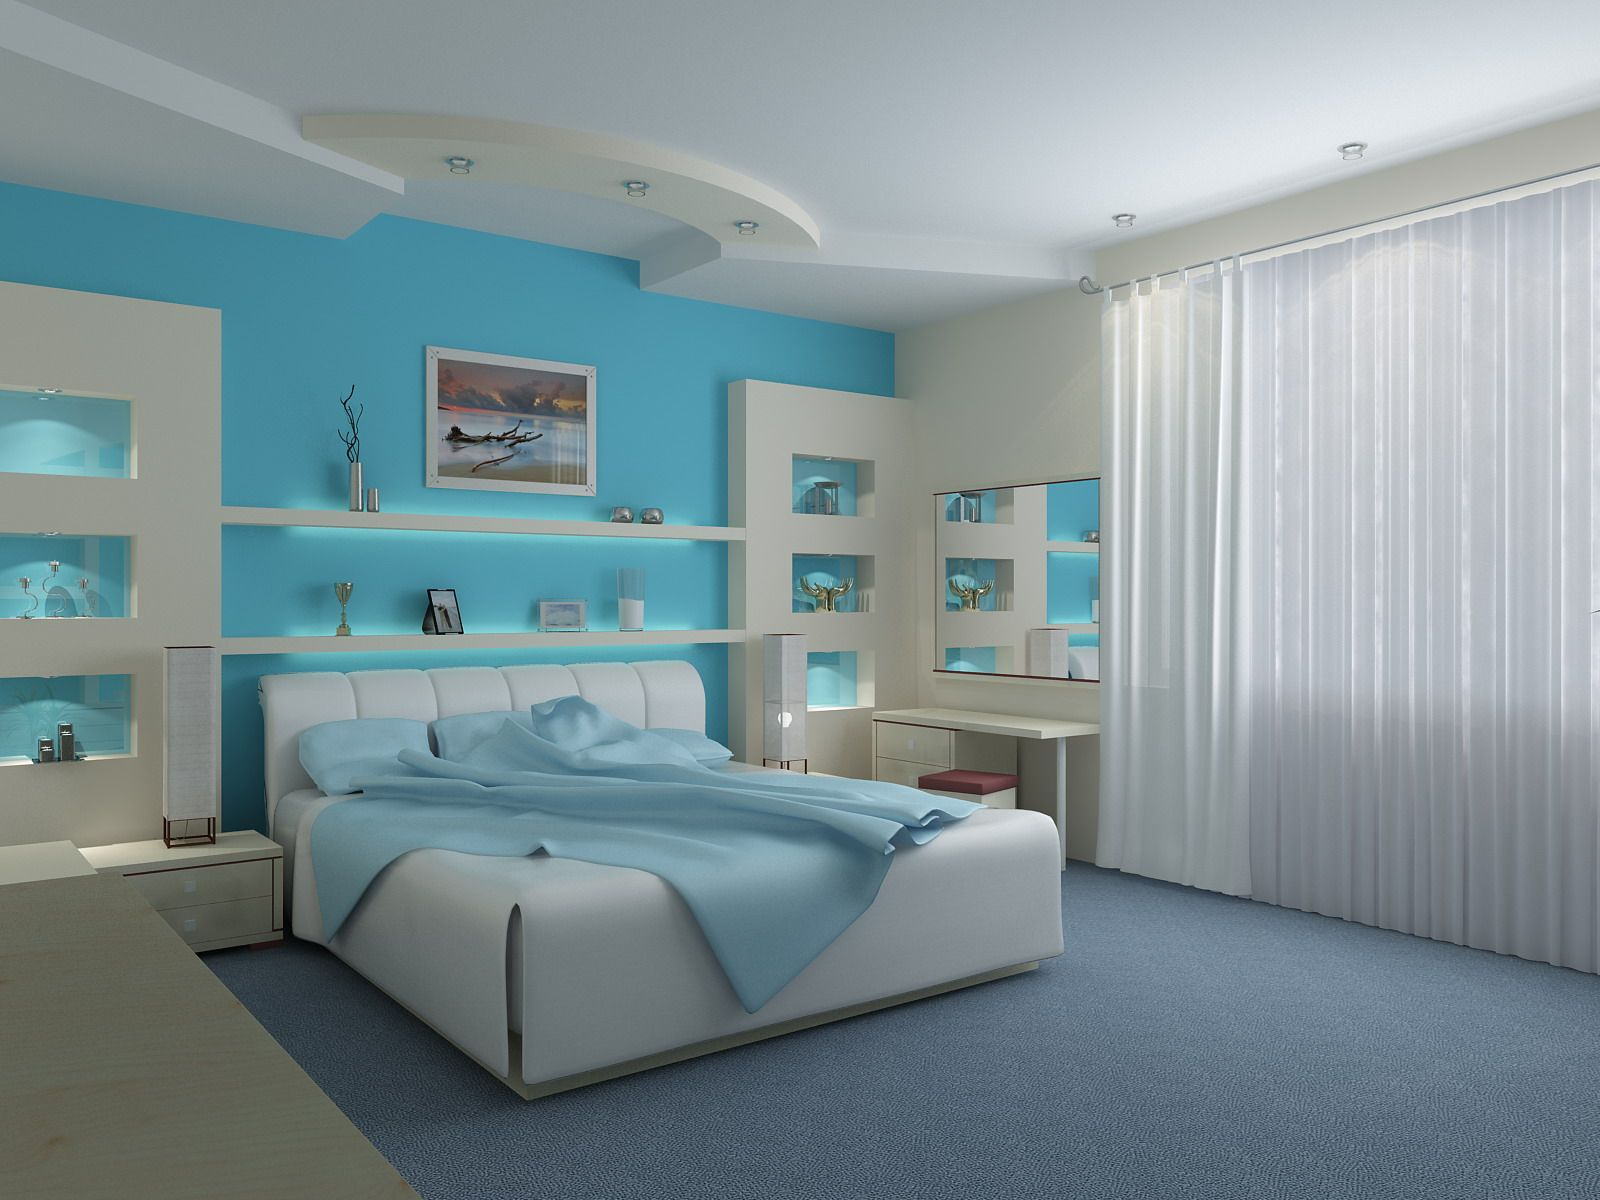 Feng Shui Color Meanings For Home Design  ۩ Diy Home Decor Ideas Pleasing Blue White Bedroom Design Review